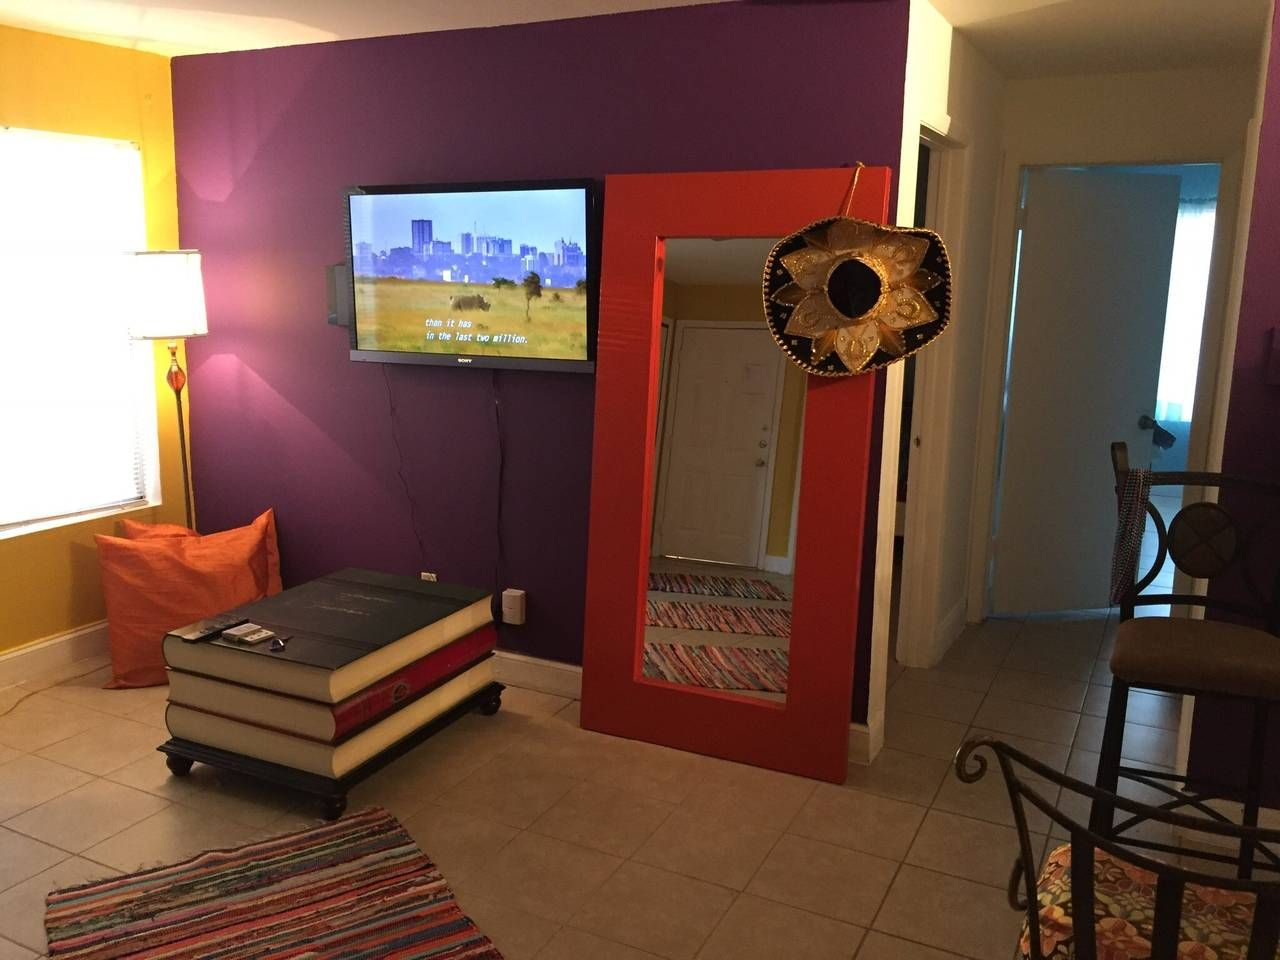 3 Bedroom Apartment close to Universal Disney 4 beds